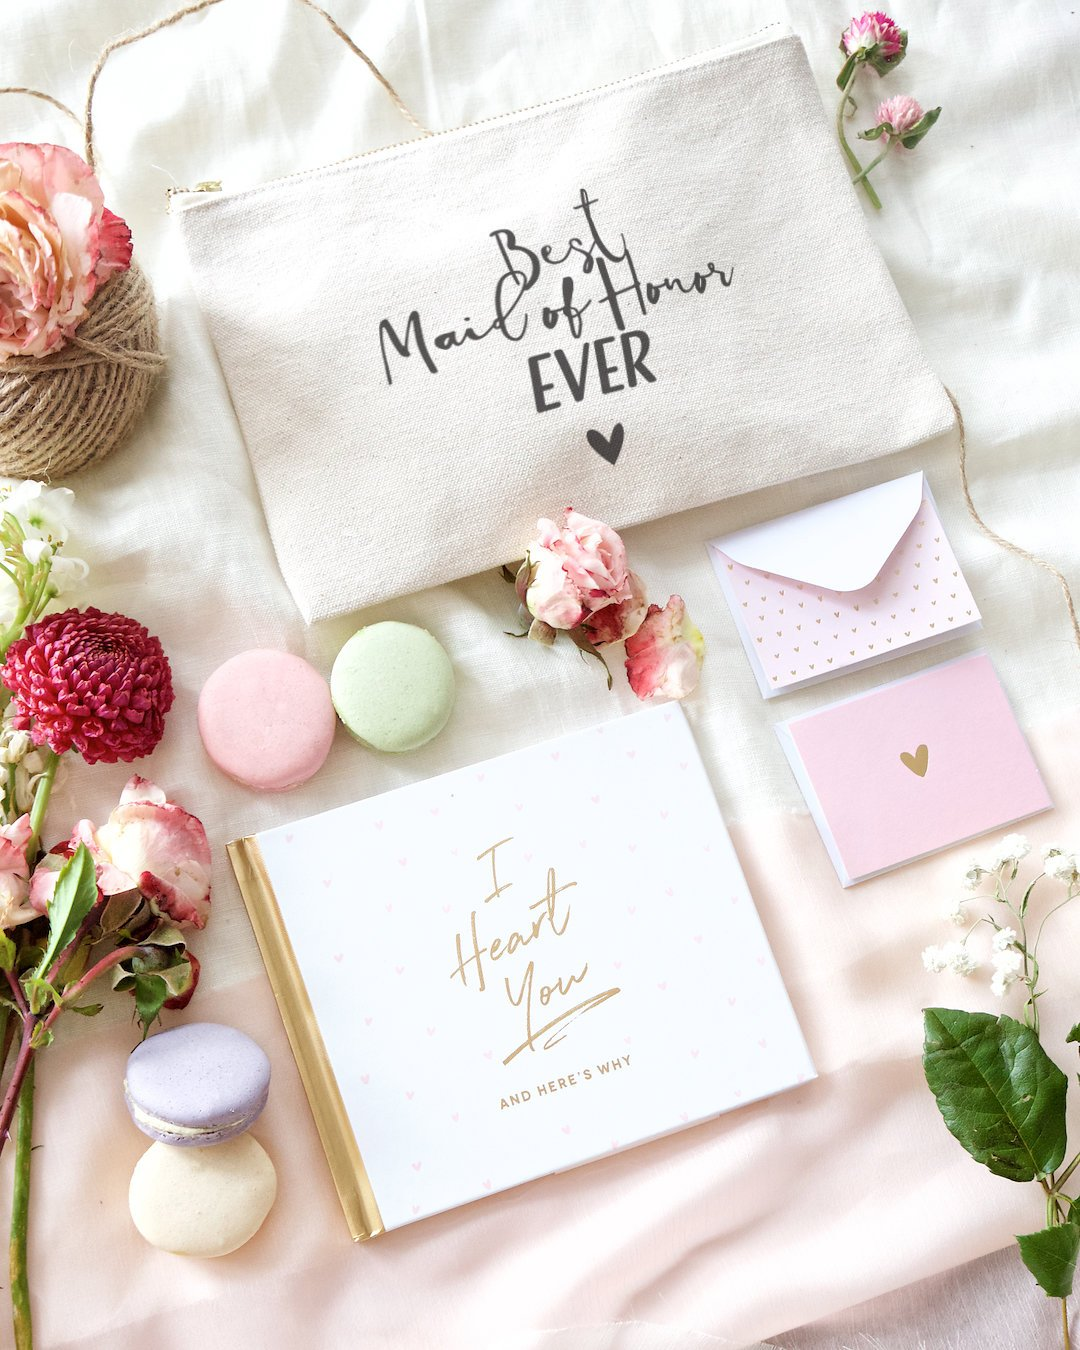 Amazon.com : The Cotton & Canvas Co. Best Maid of Honor Ever Wedding ...